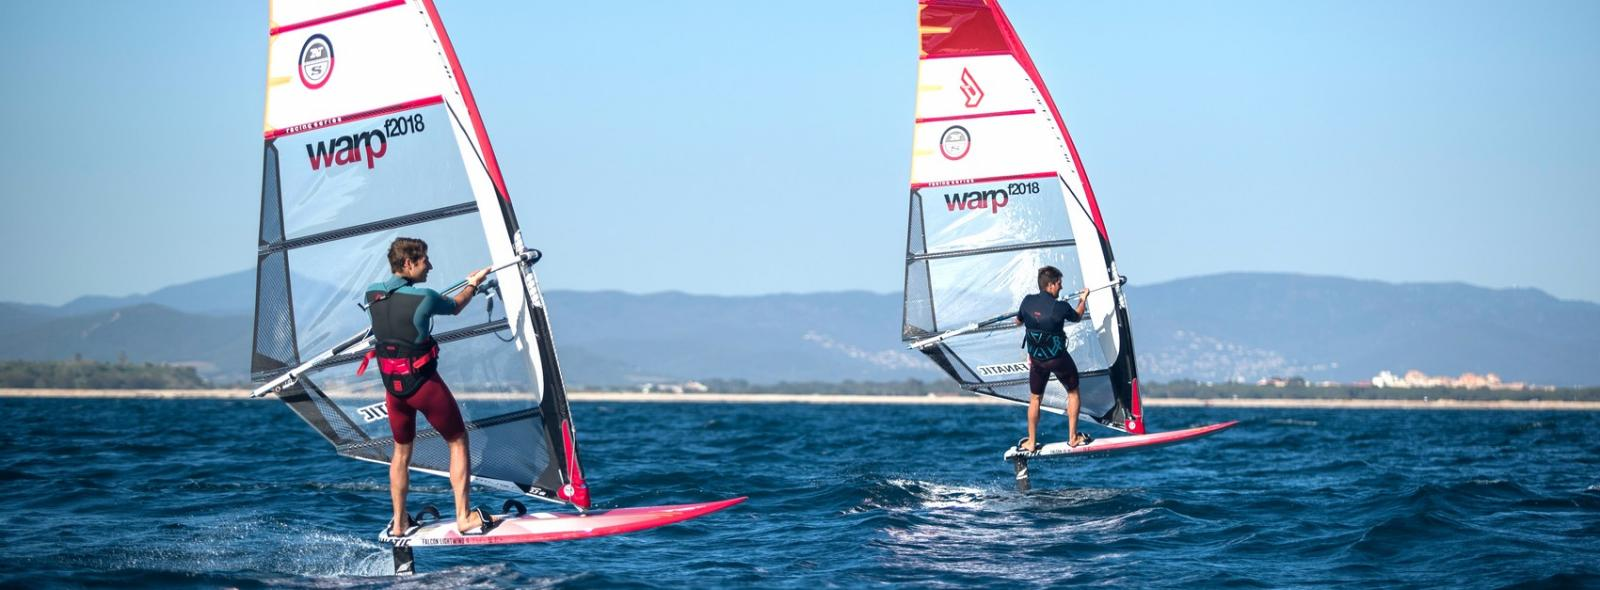 Apprendre le wind foil au ION CLUB de Rosas avec William Huppert 3